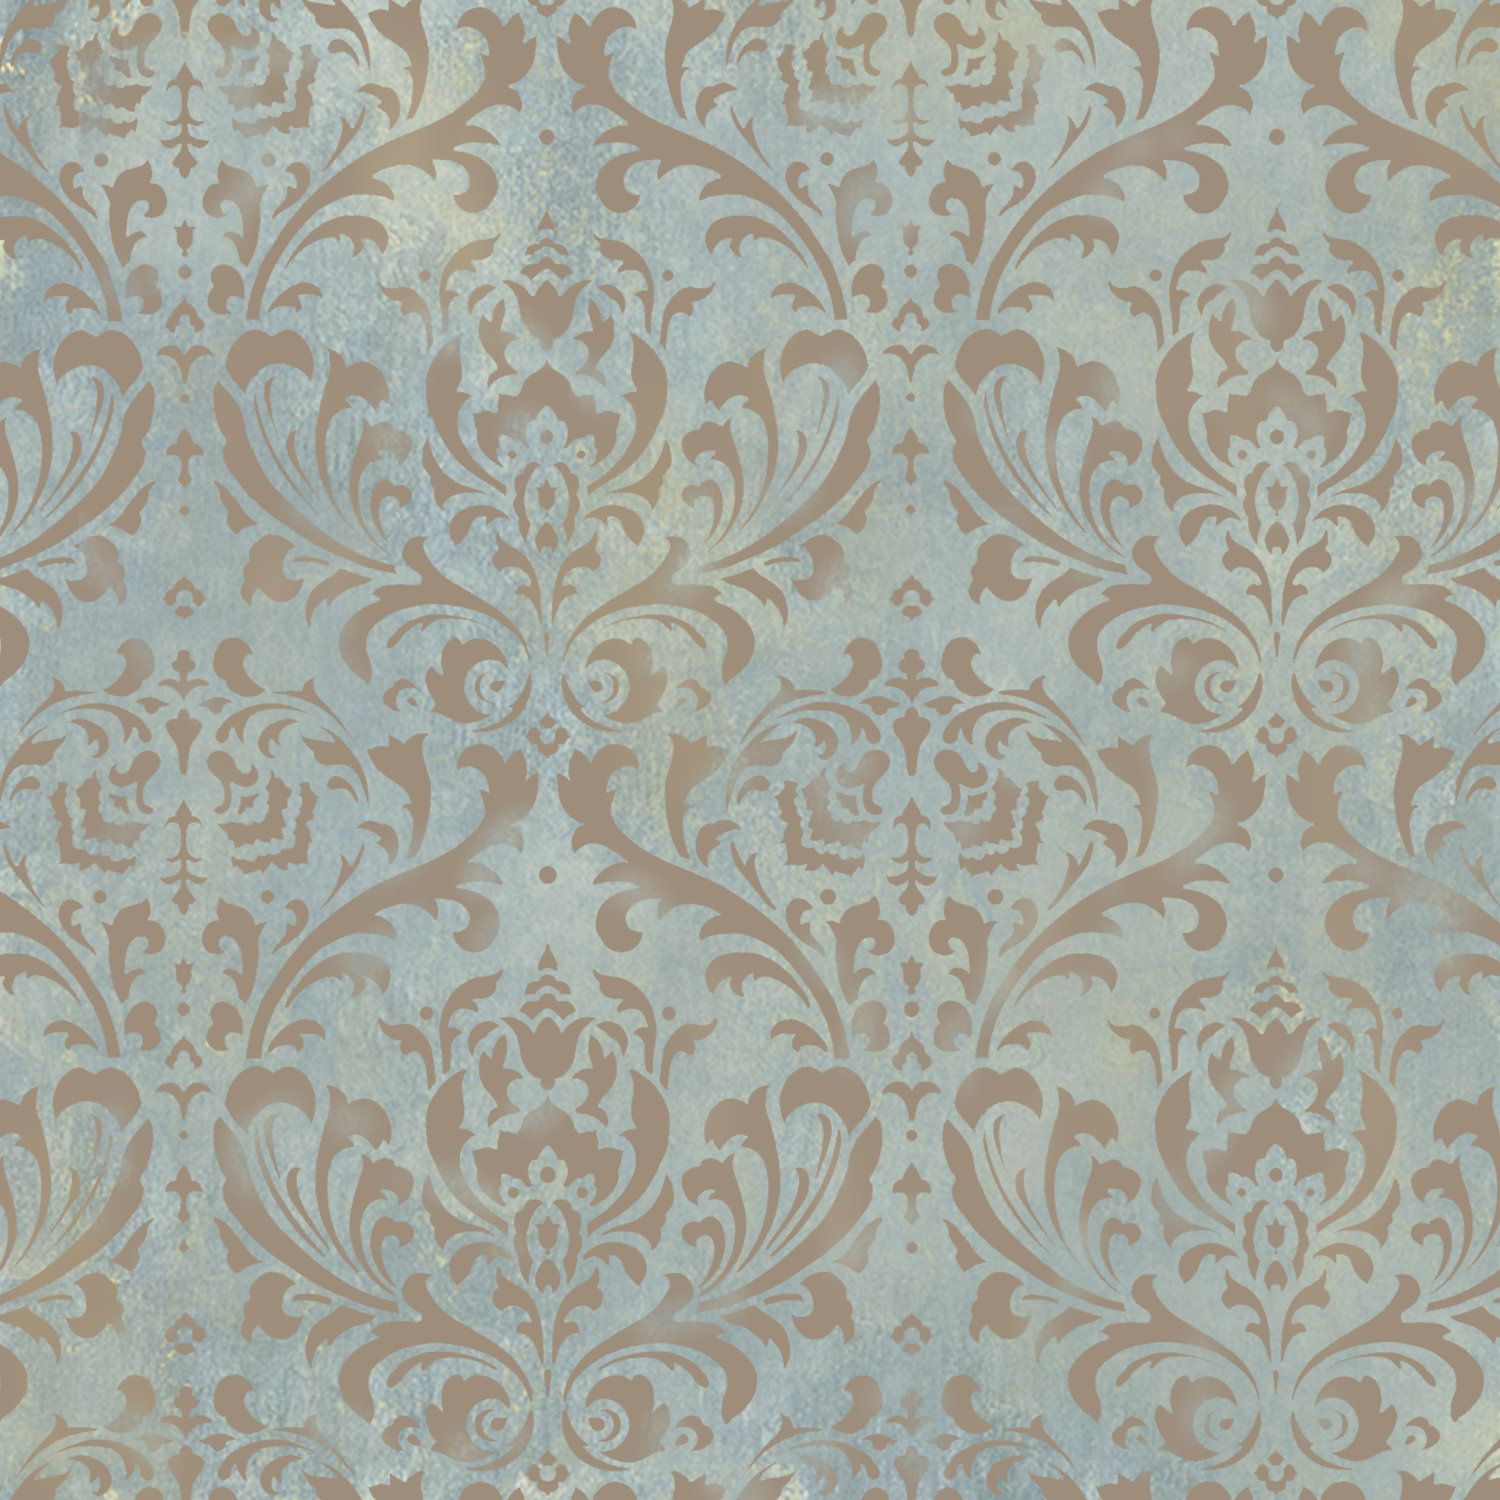 Ordered this to make fuax wall paper in my closet and hallway damask stencil anna reusable large wall stencils diy decor perfect for my bedroom amipublicfo Choice Image